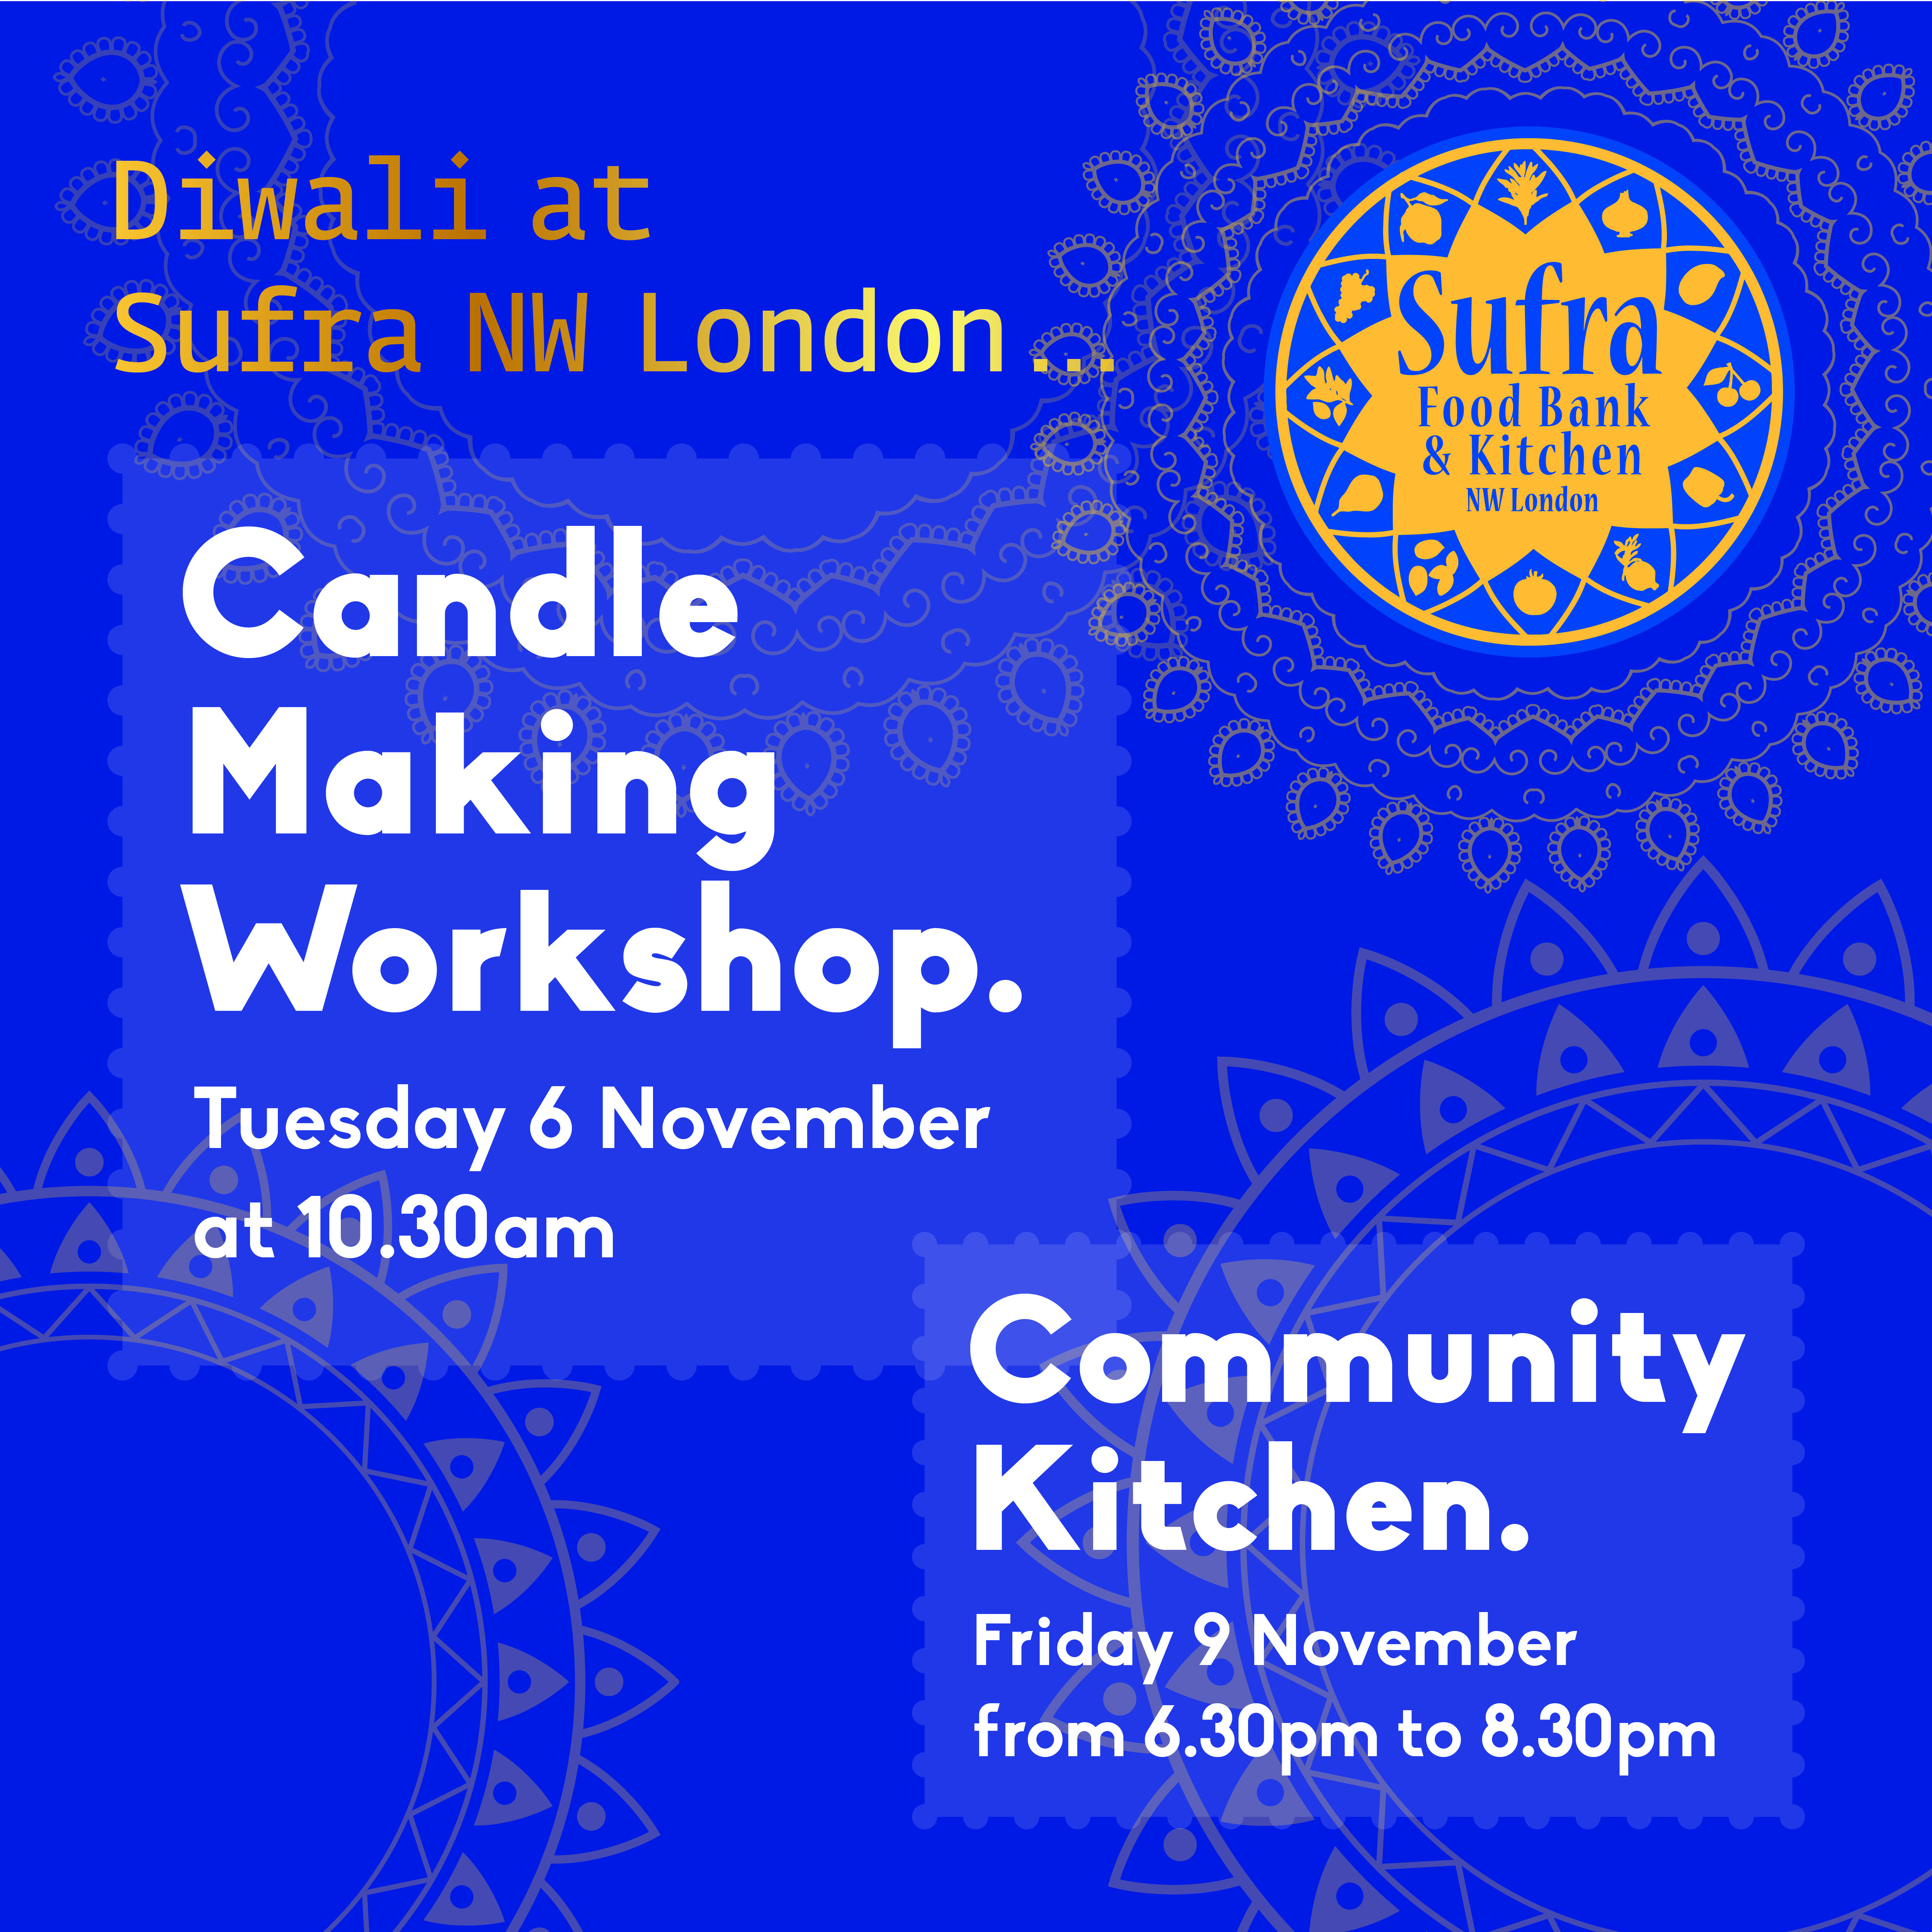 Diwali @ Sufra NW London